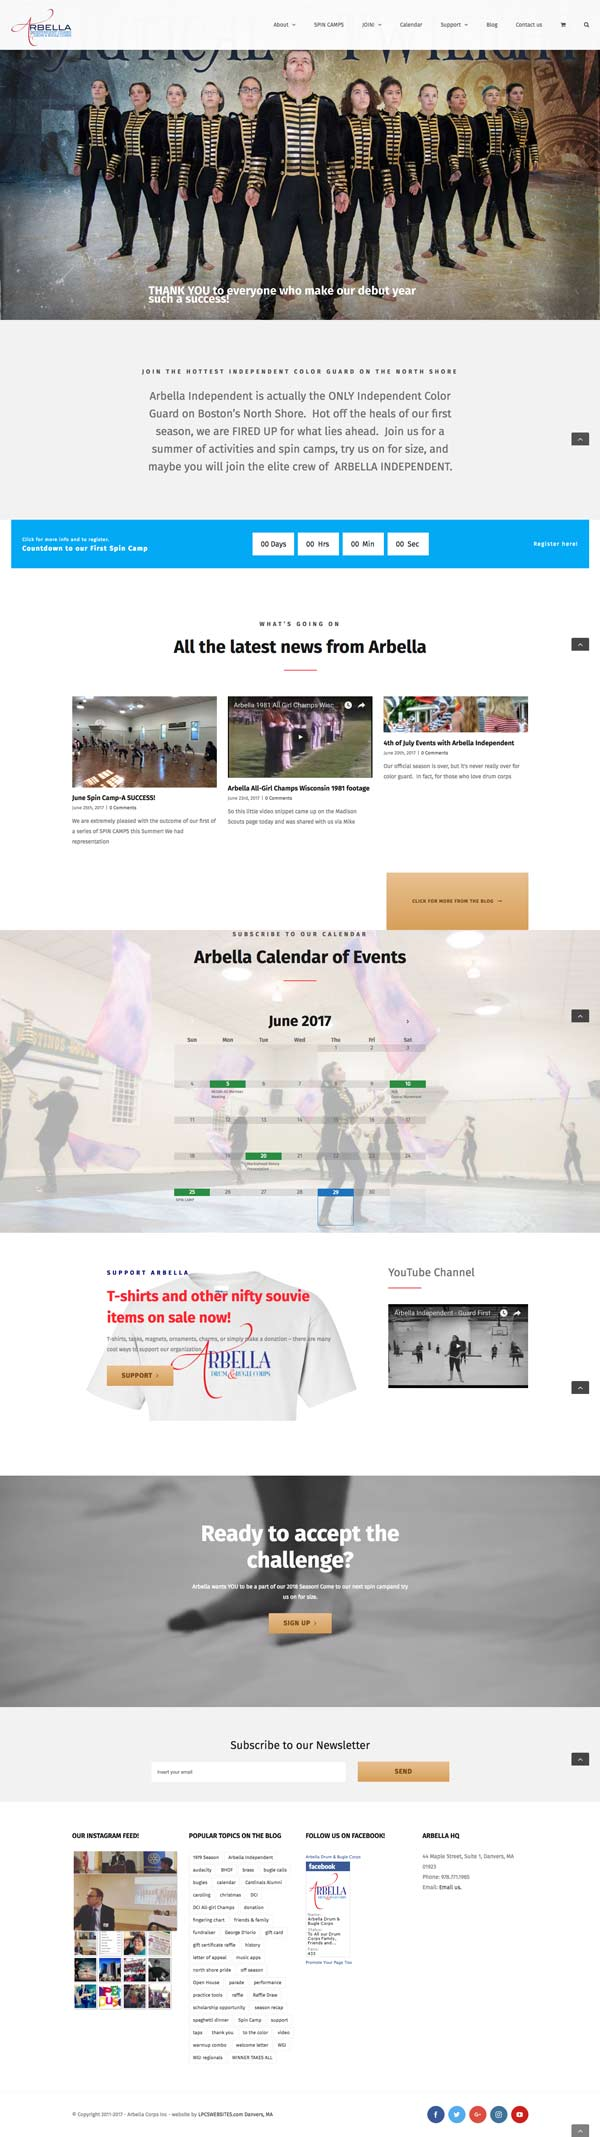 local non-profit gets website makeover danvers arbella drum bugle corps